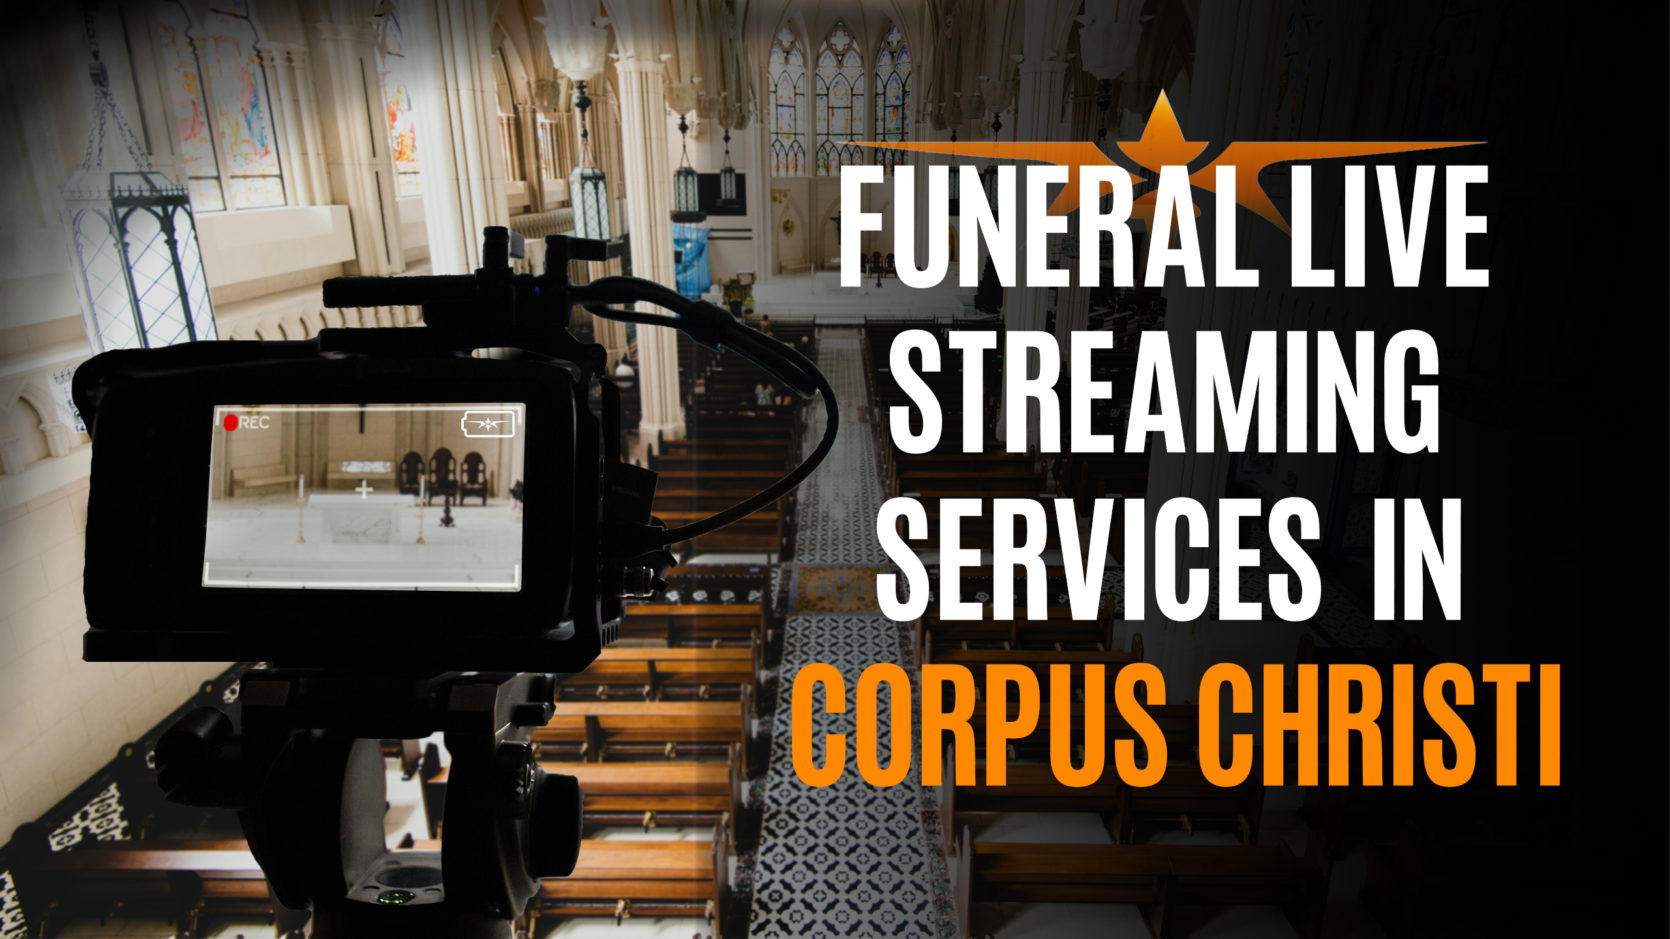 Funeral Live Streaming Services in Corpus Christi